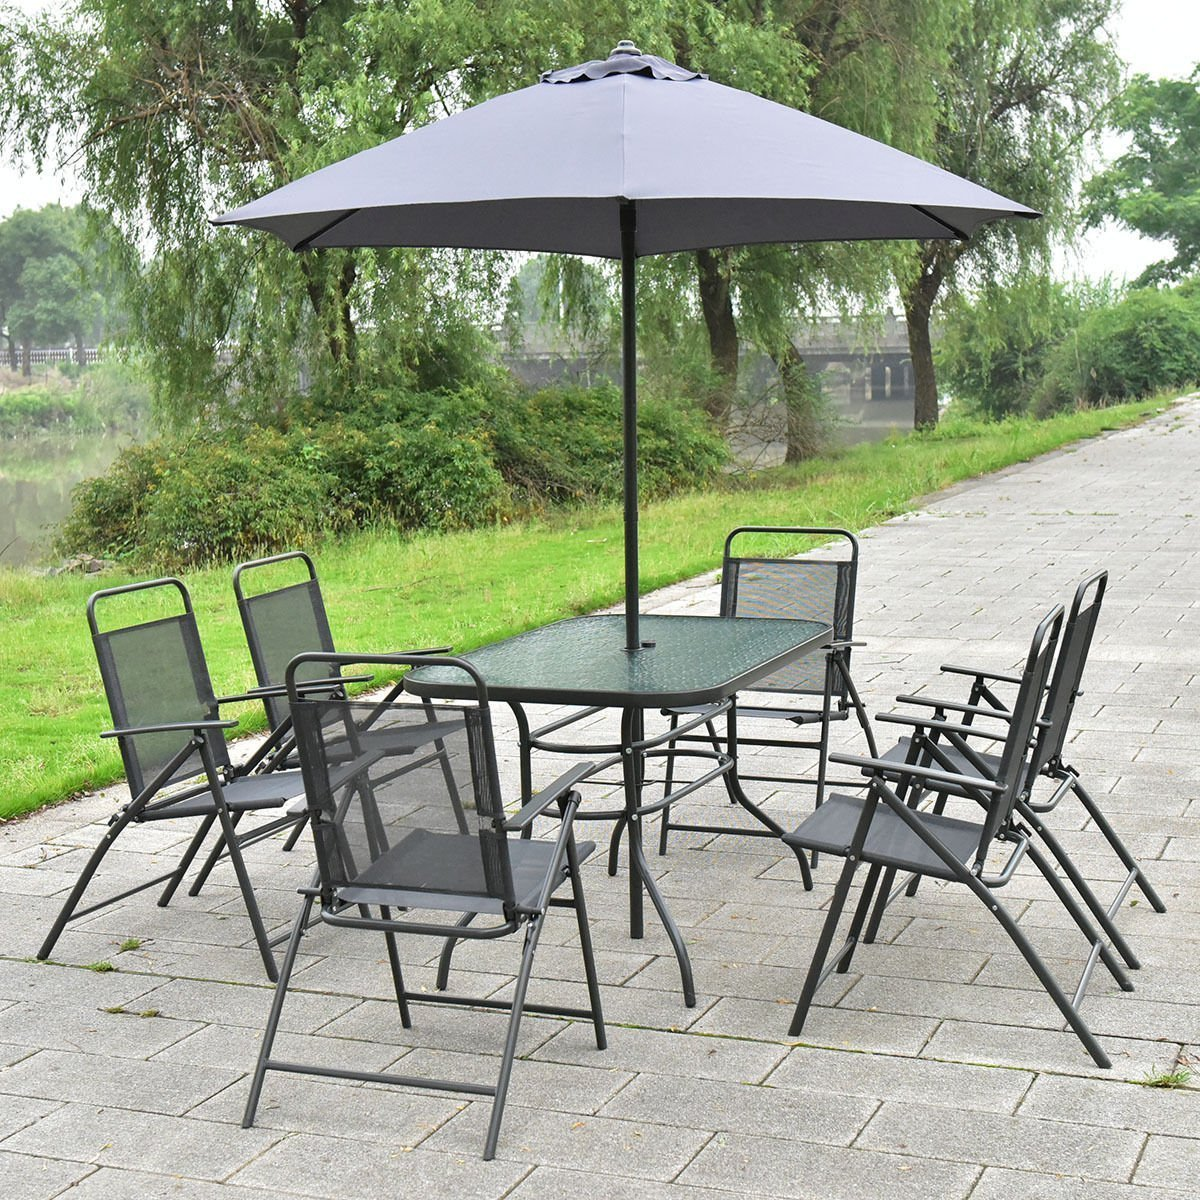 amazoncom giantex 8pcs patio garden set furniture 6 folding chairs table with umbrella gray new garden outdoor